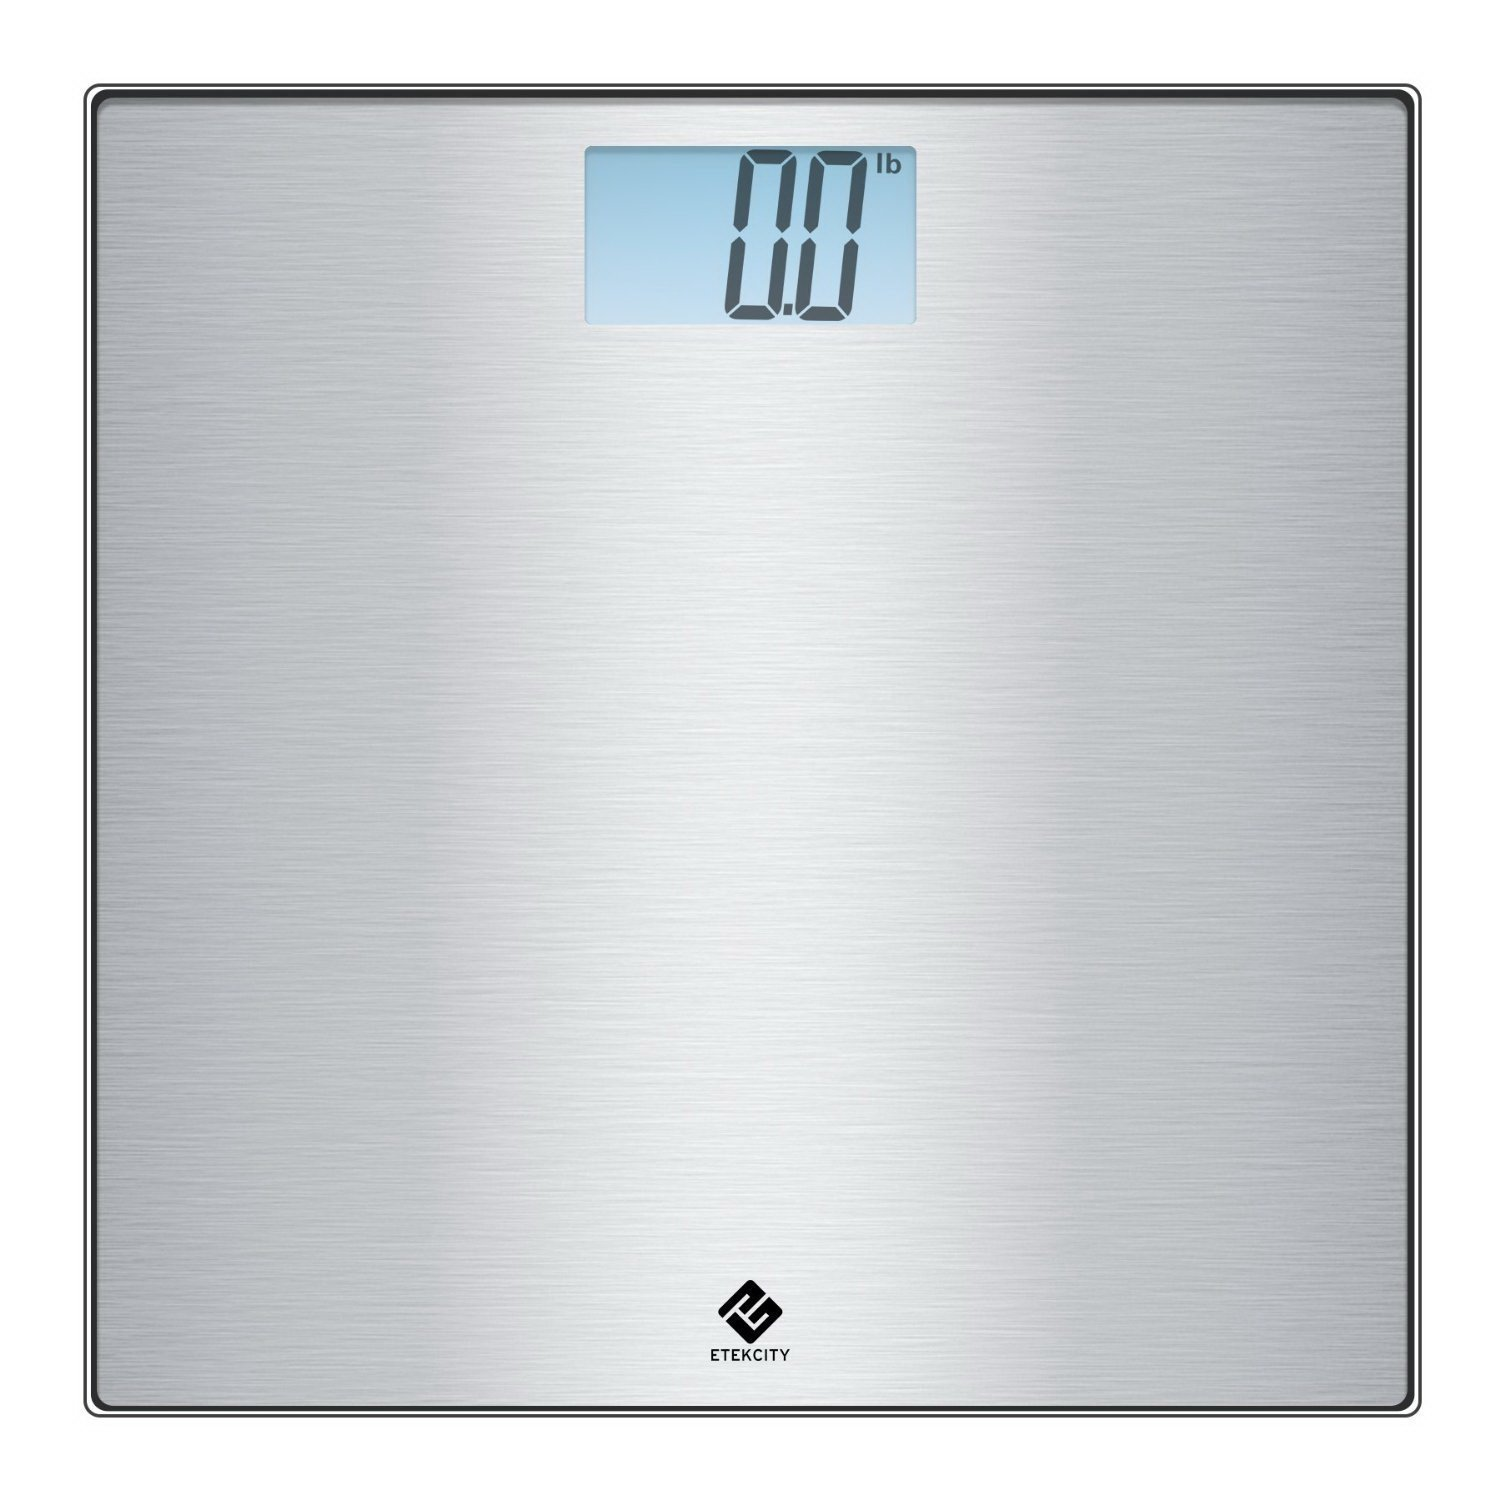 Etekcity Stainless Steel Digital Body Weight Bathroom Scale, Step-On Technology, 400 Pounds 783956542502